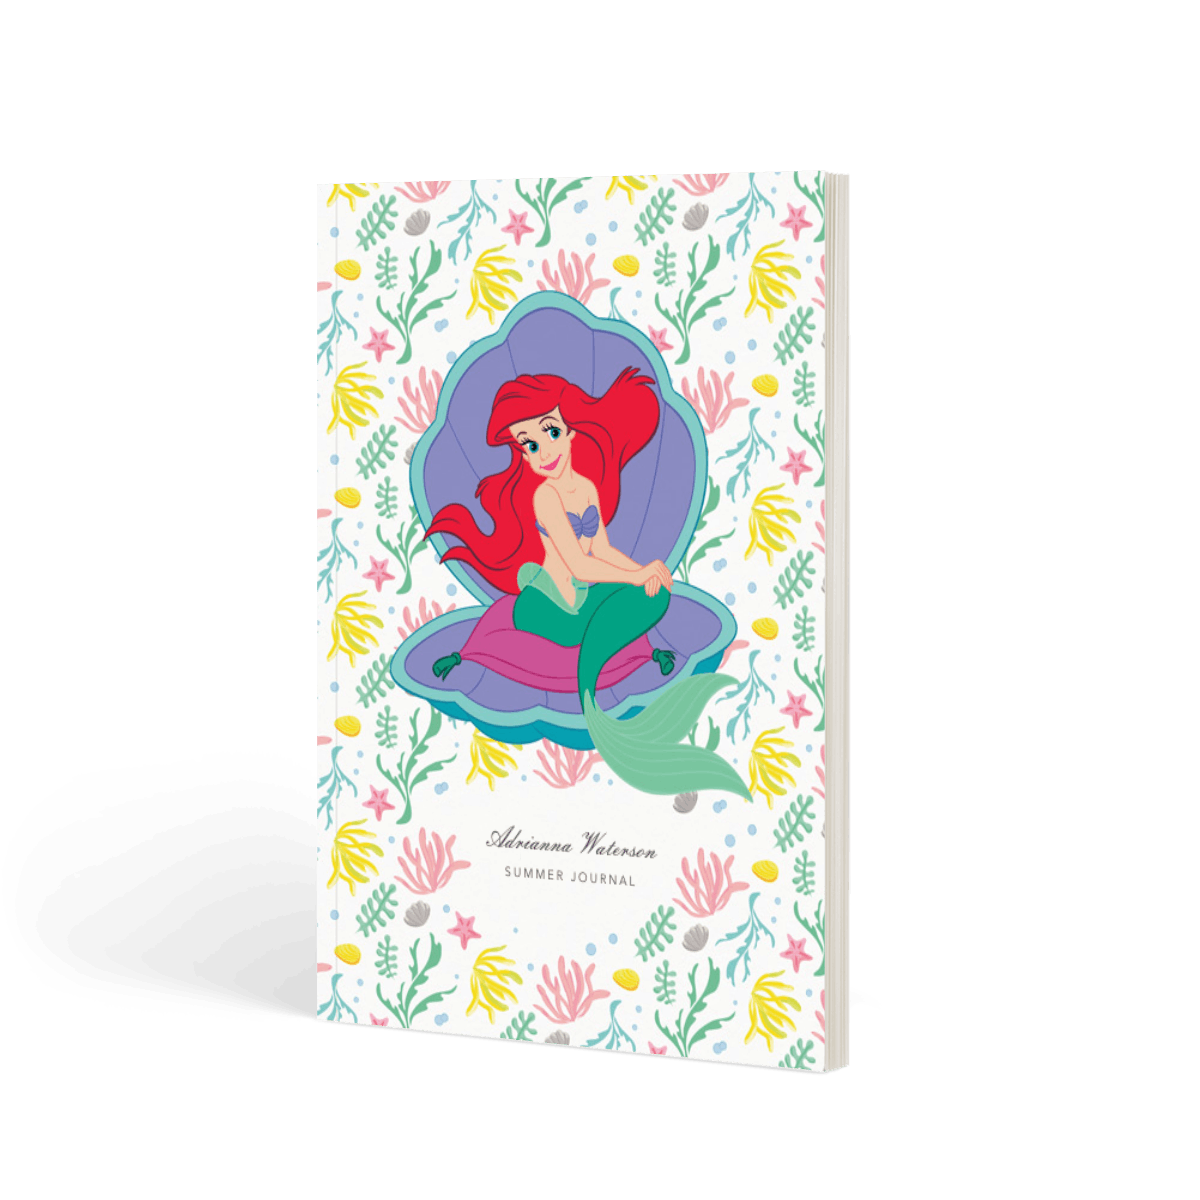 Https%3a%2f%2fwww.papier.com%2fproduct image%2f54120%2f6%2fthe little mermaid 13018 vorderseite 1542292248.png?ixlib=rb 1.1